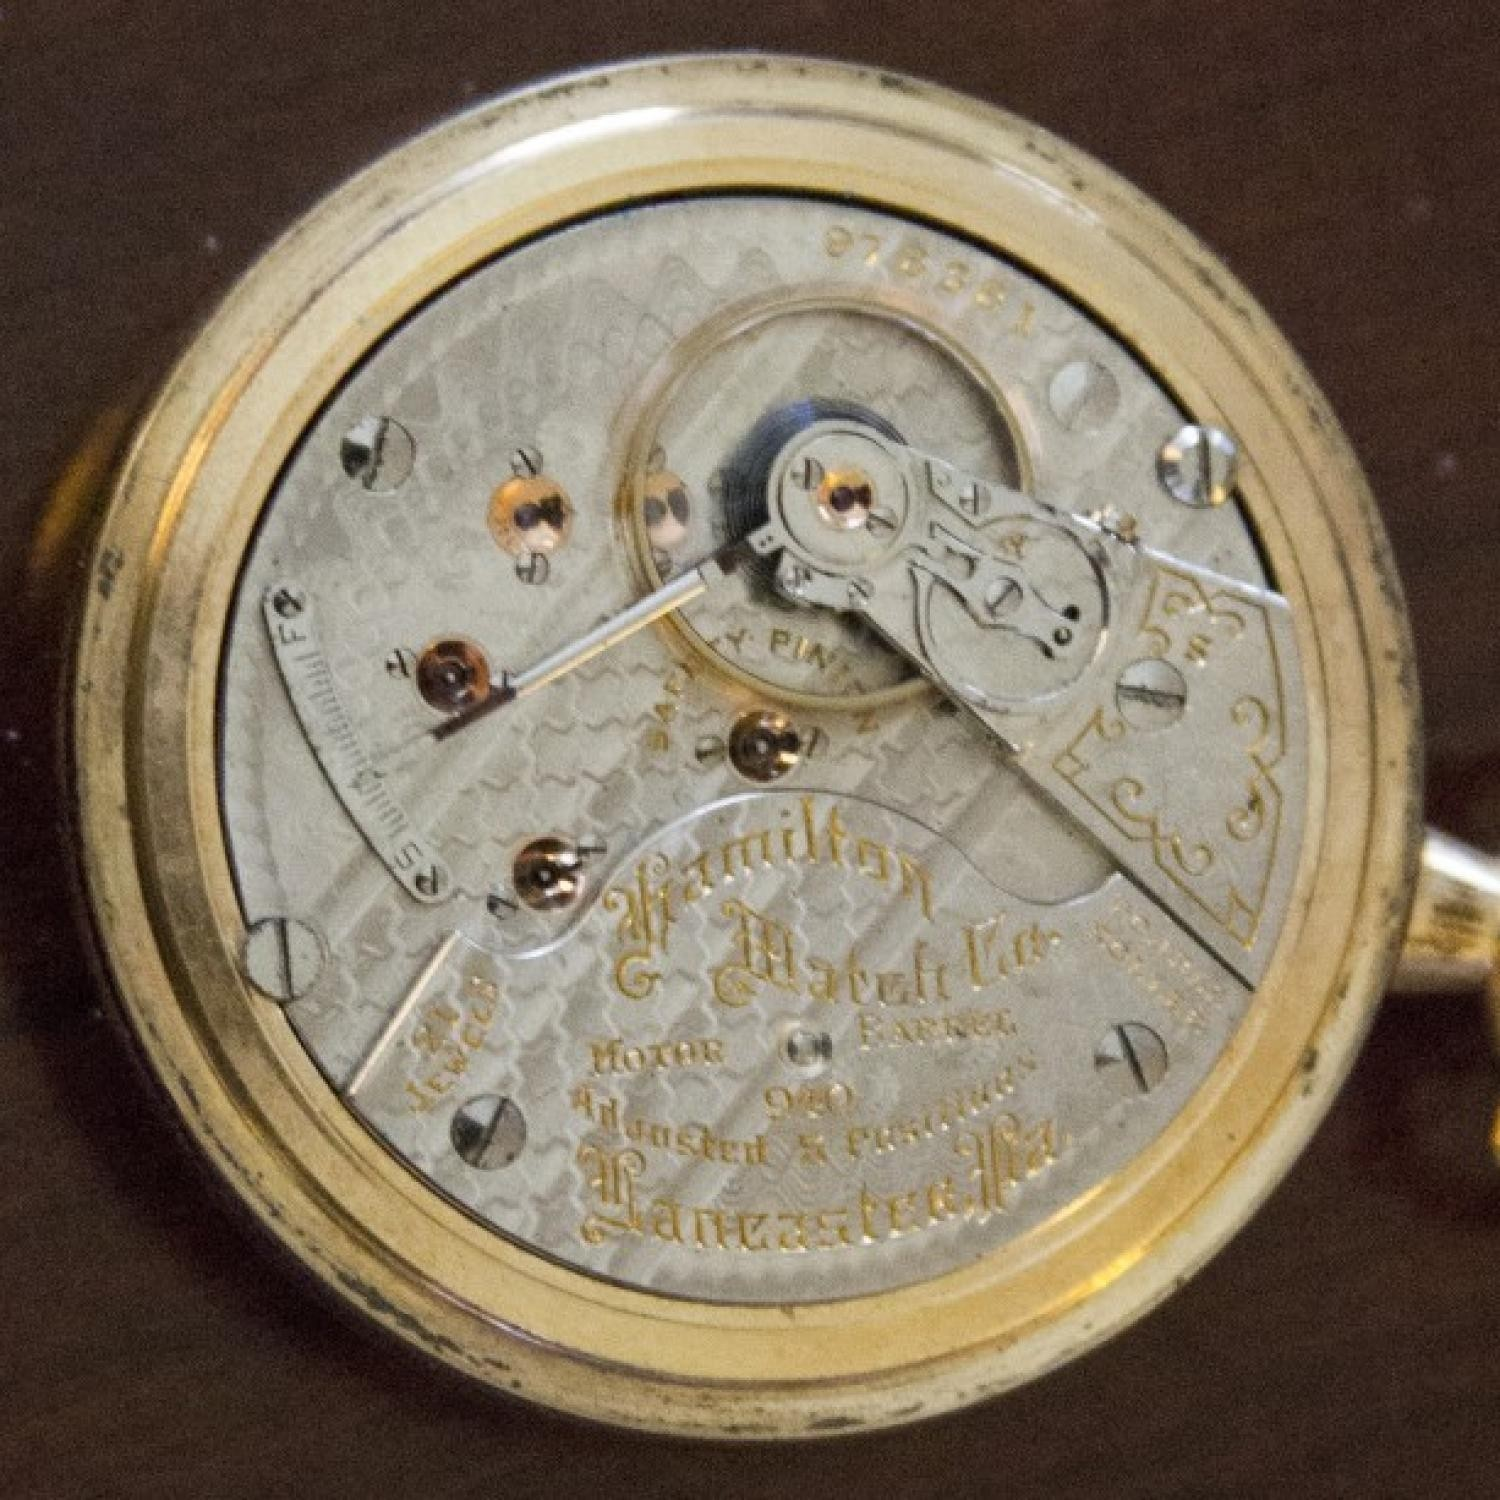 Image of Hamilton 940 #978331 Movement